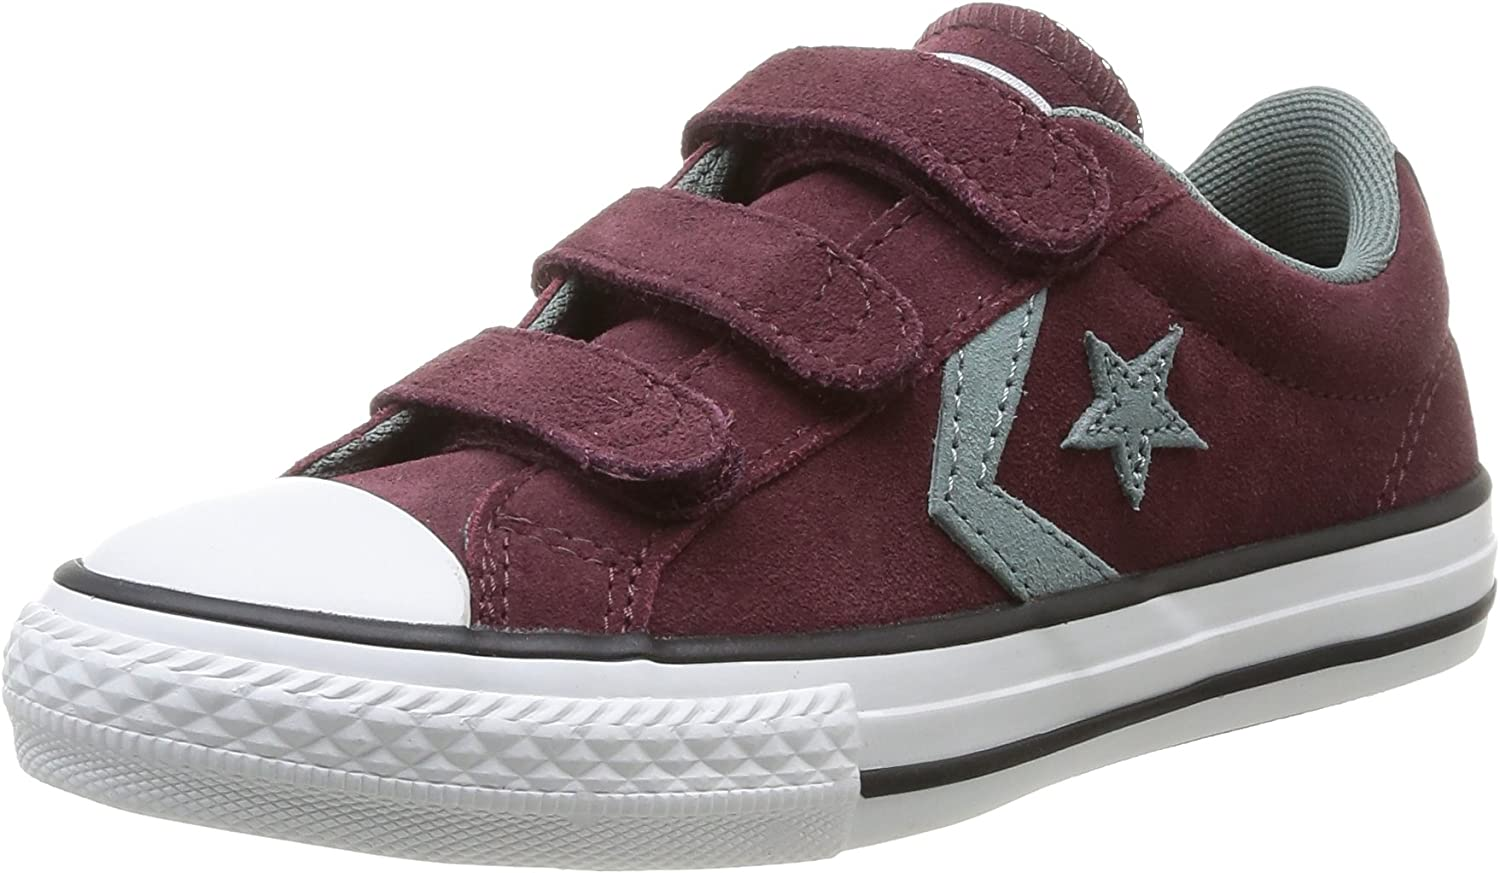 Converse Unisex Kids' Star Player Junior 3v Suede Ox Sneakers